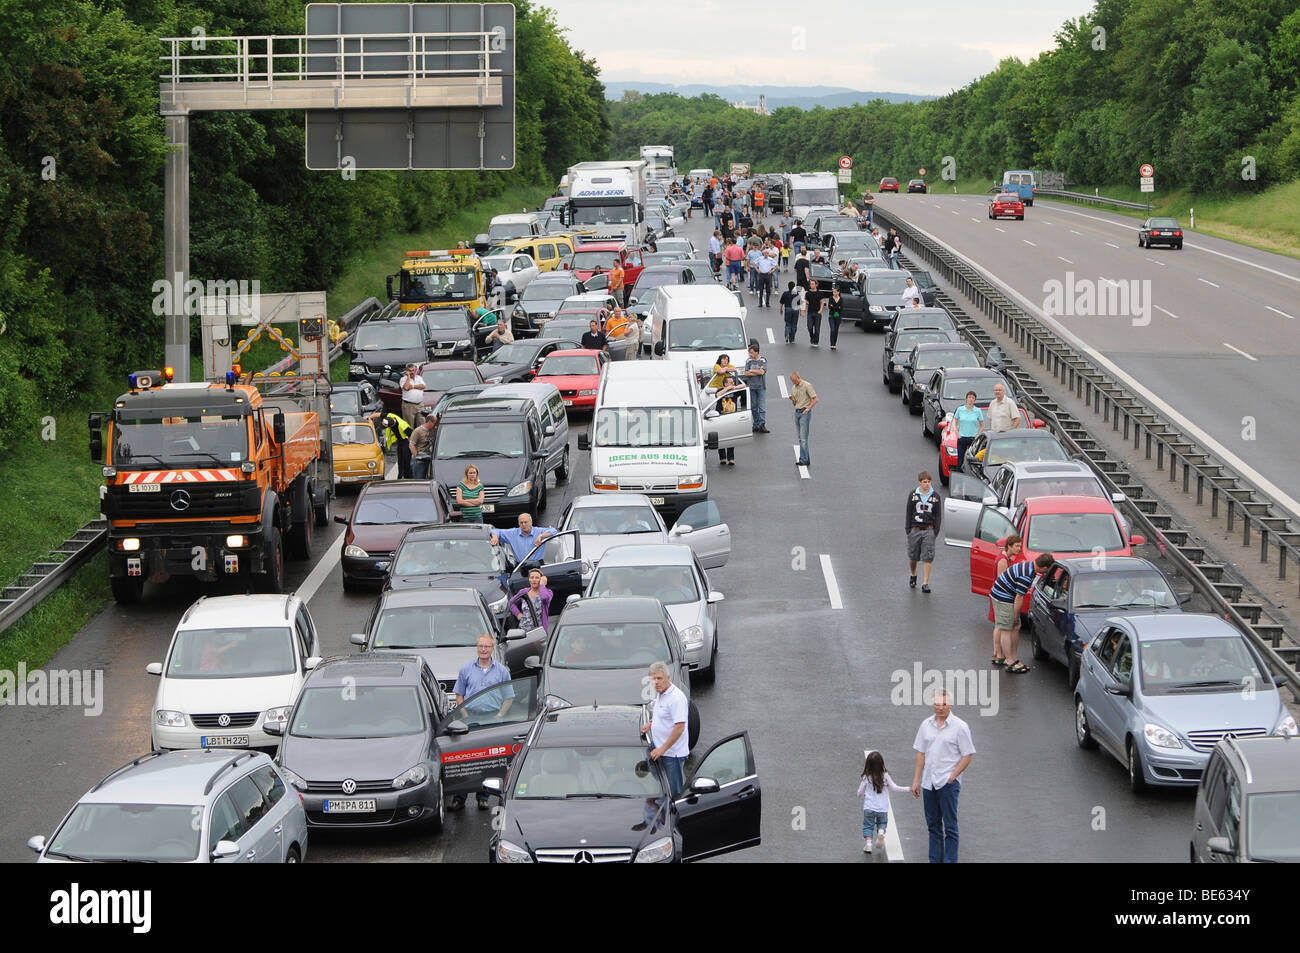 Traffic jam after flooding on the A 81 highway at km 563, between Pleidelsheim and Ludwigsburg-Nord in the direction - Stock Image